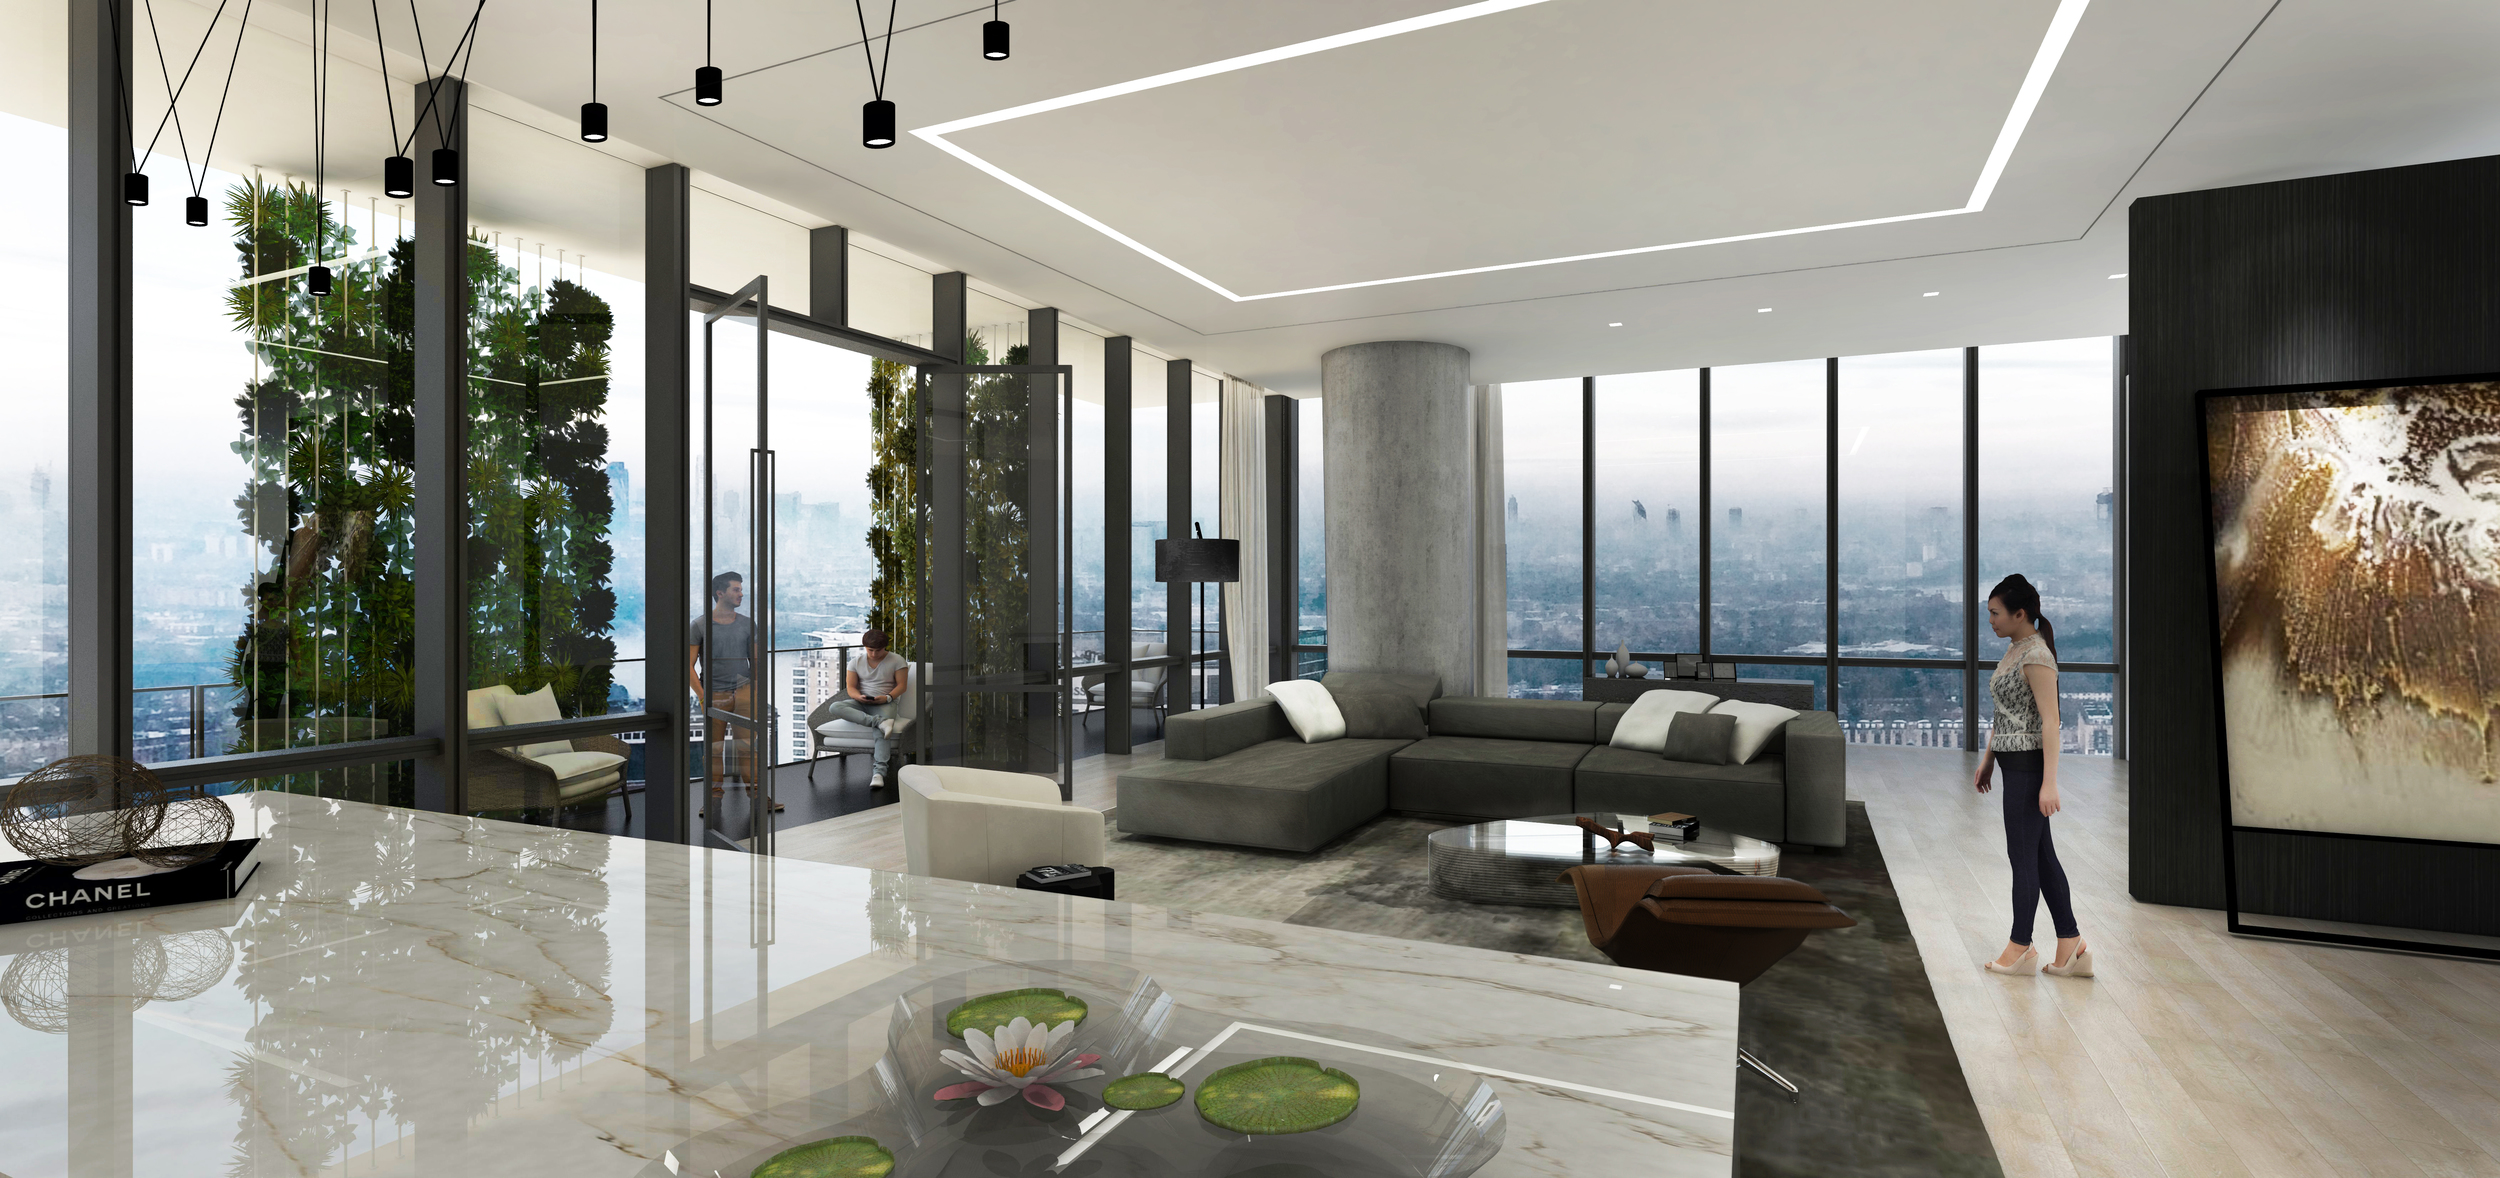 Interior Rendering with Balcony - turned screen.jpg